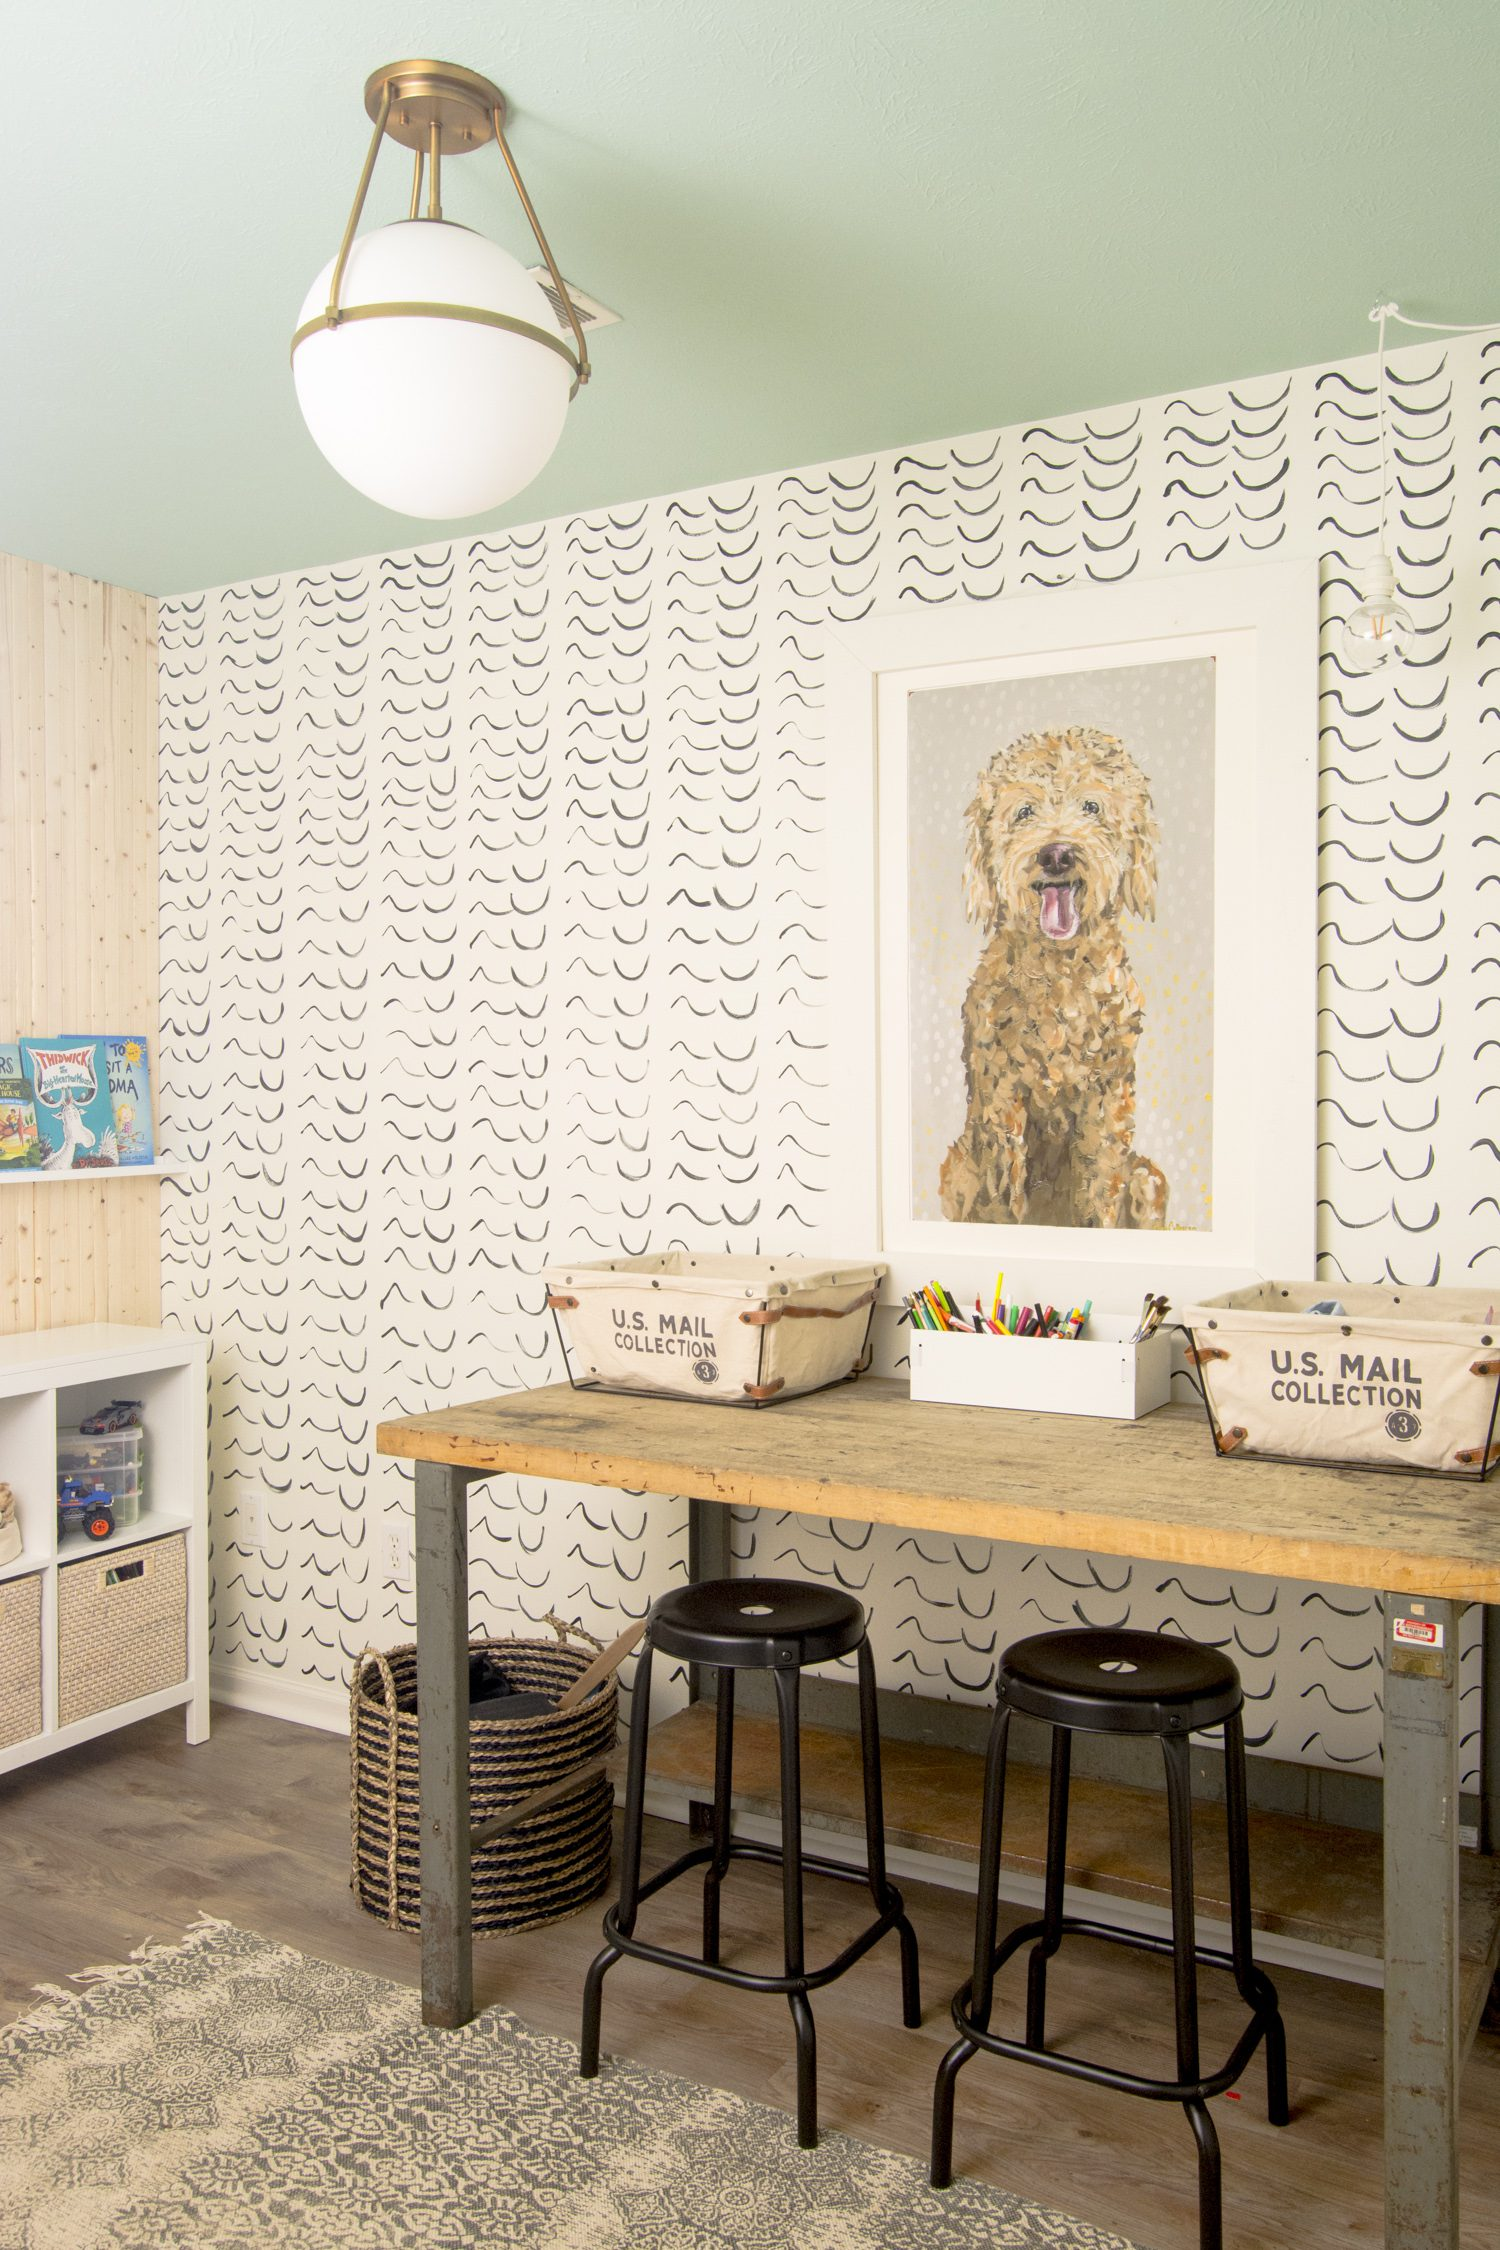 Kid's playroom and craft station makeover